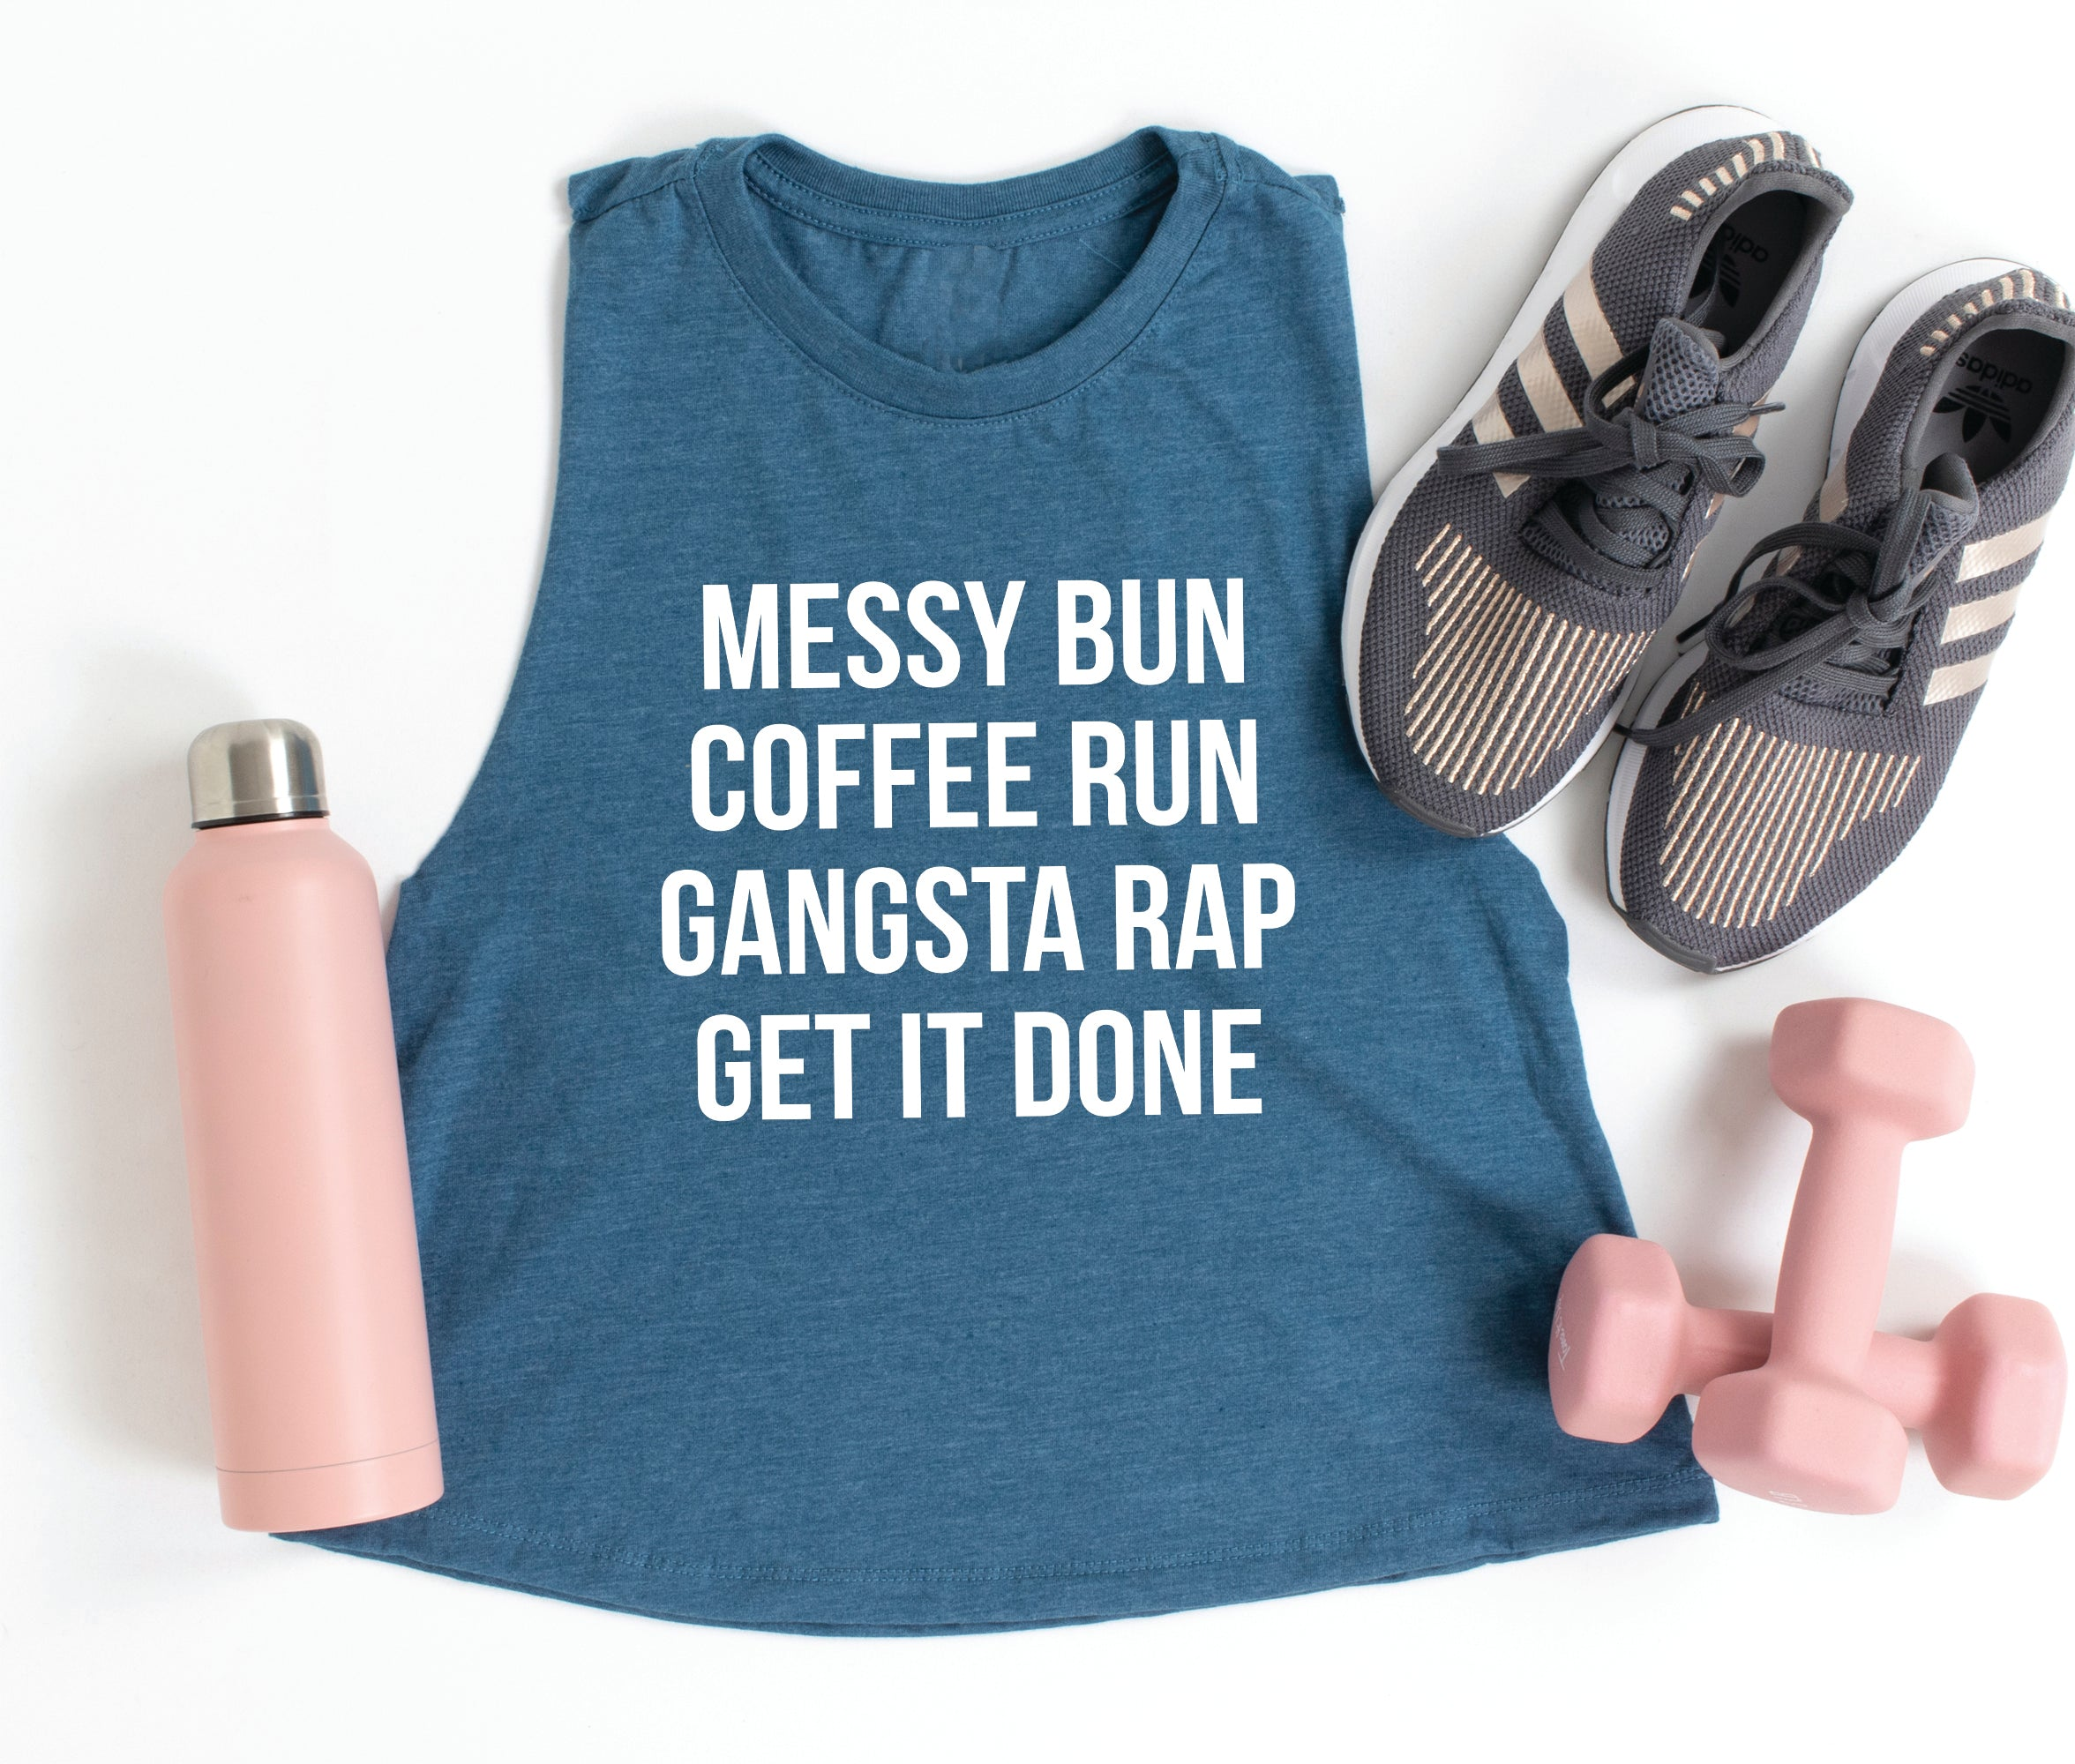 Messy Bun Coffee Run Gangsta Rap Get It Done. Fitness Tank. Workout Shirt. Gym Tank. Lift Heavy. Funny Fitness. Cross fit. Bootcamp.Gangsta